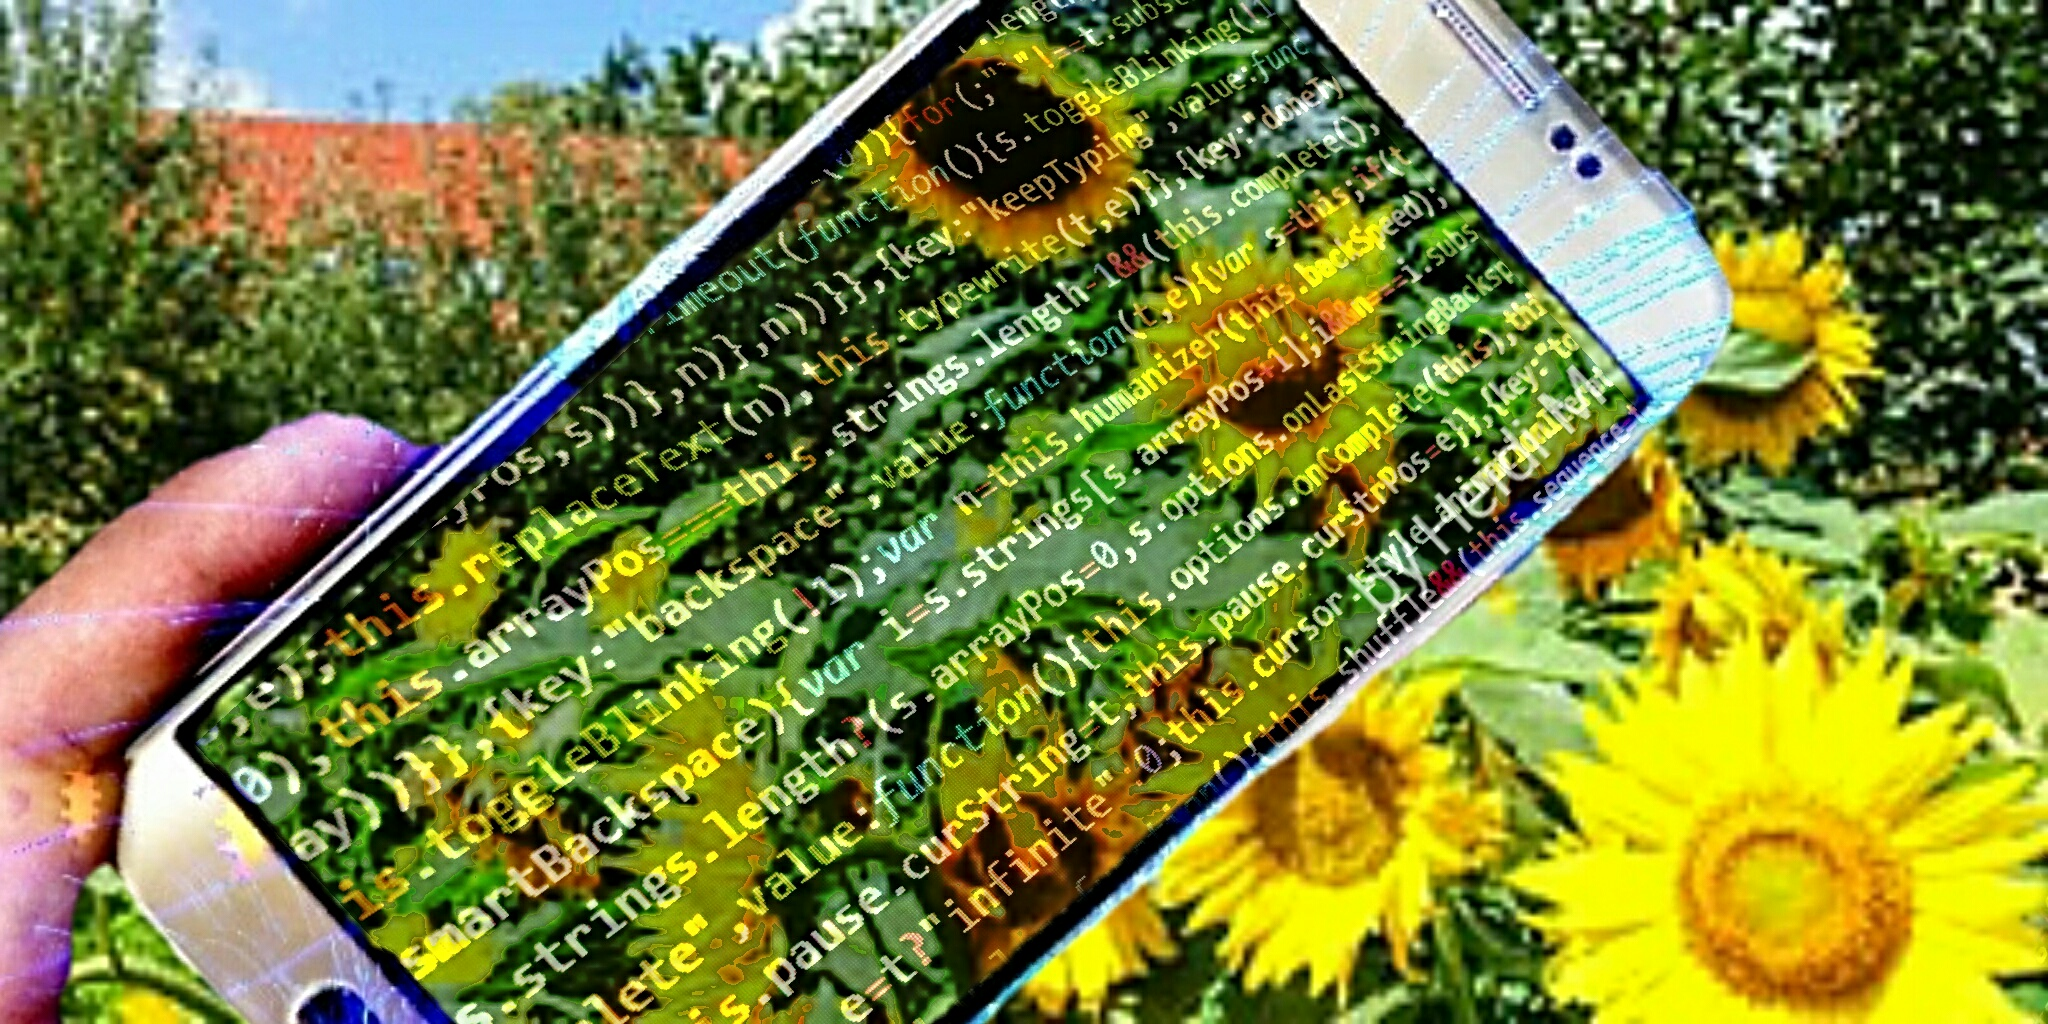 A mobile phone with coding text on it as an overlay on a sunflower background.